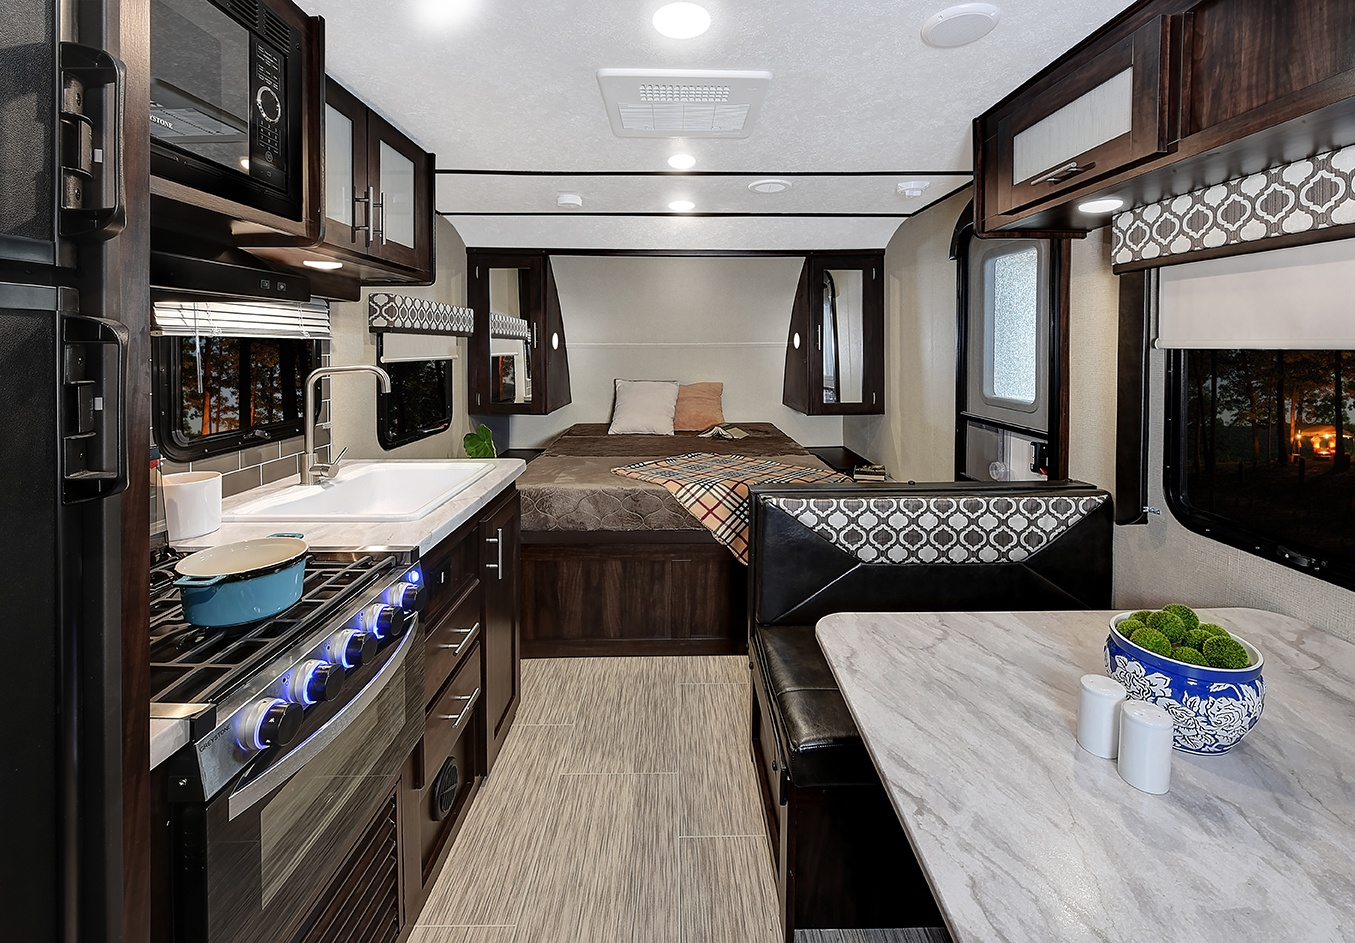 Prime Time Tracer Breeze Travel Trailer Interior